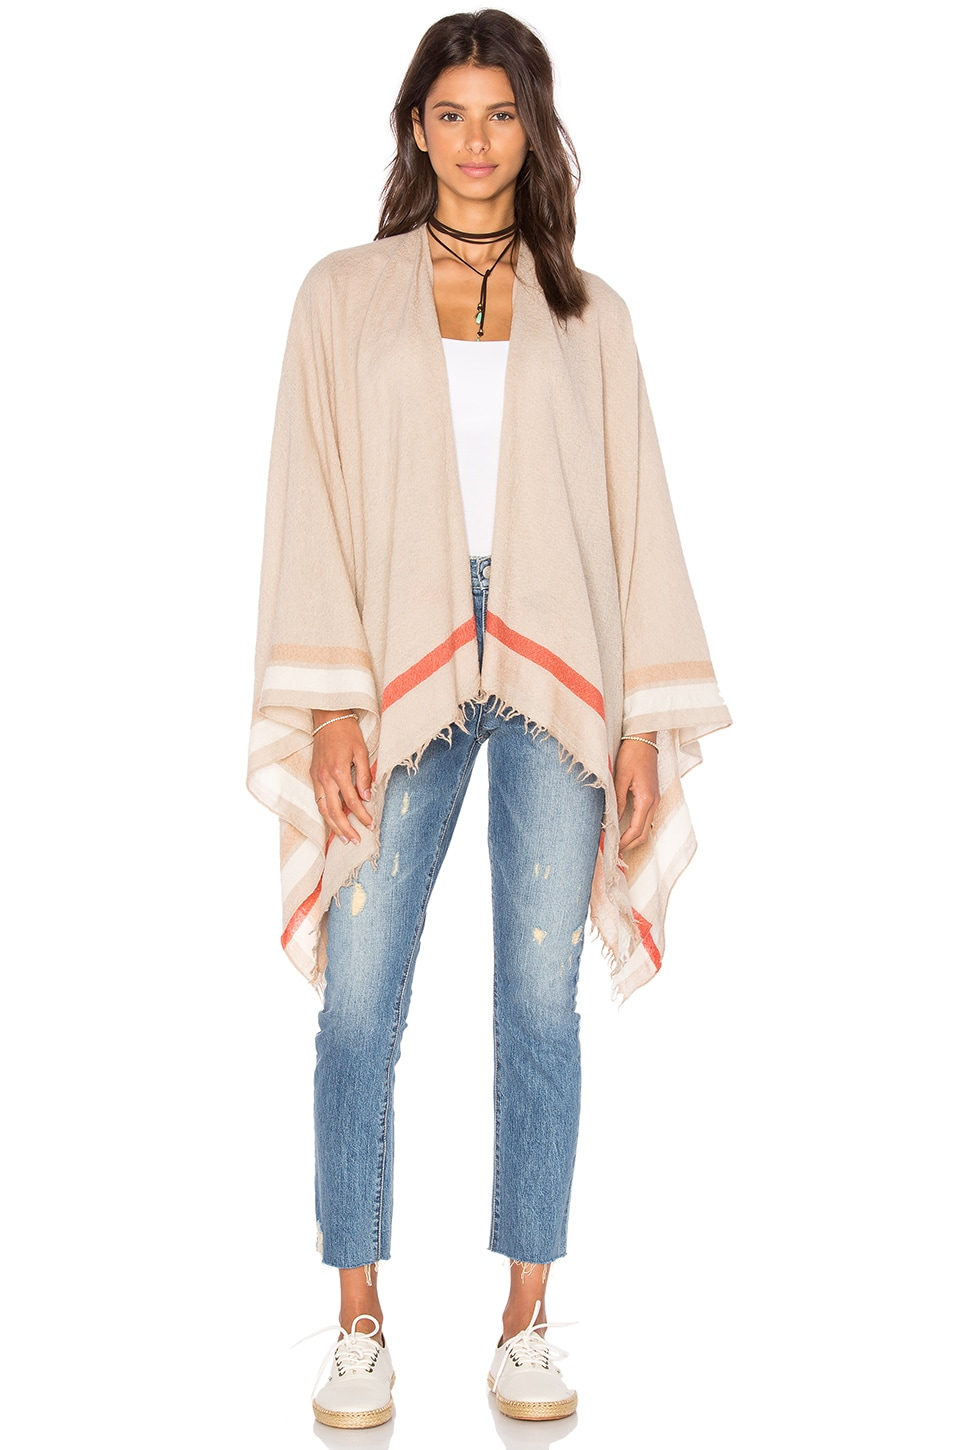 Rag & Bone Addie Poncho in Tan